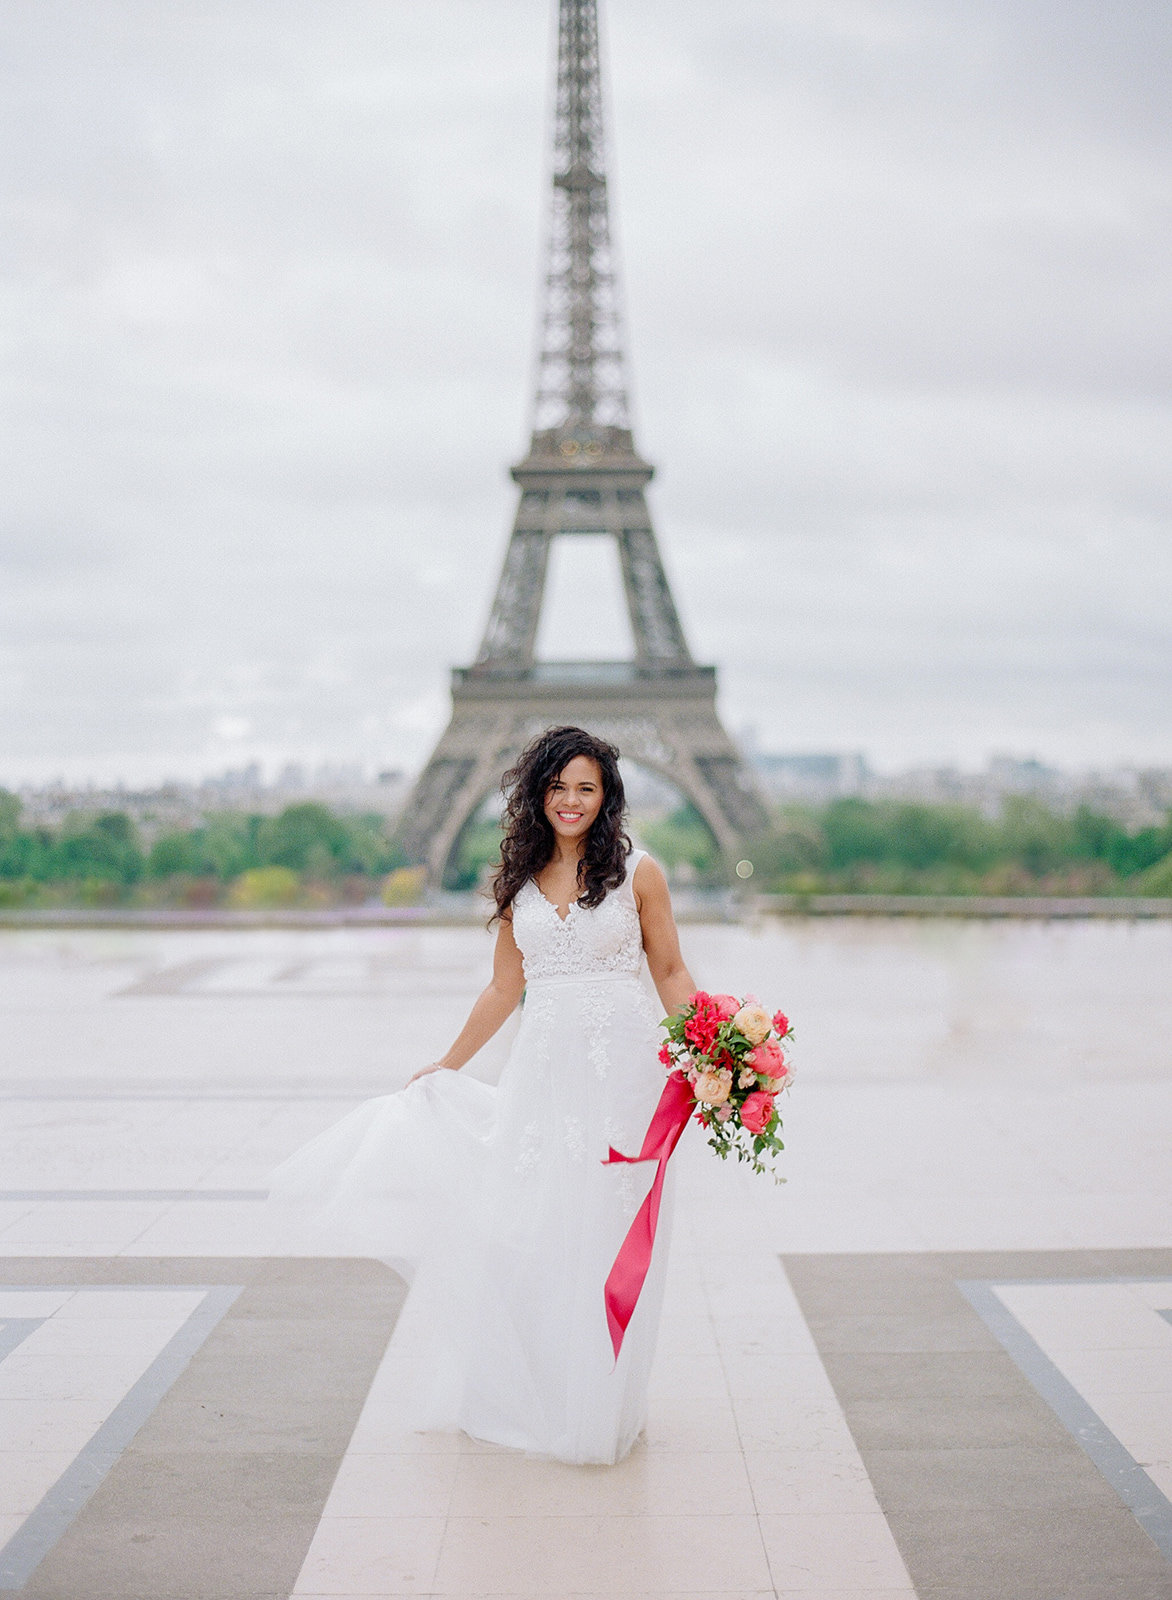 Laure_Lalliard_Design_Trocadero_Janine_Licare_Photography-3 (2)